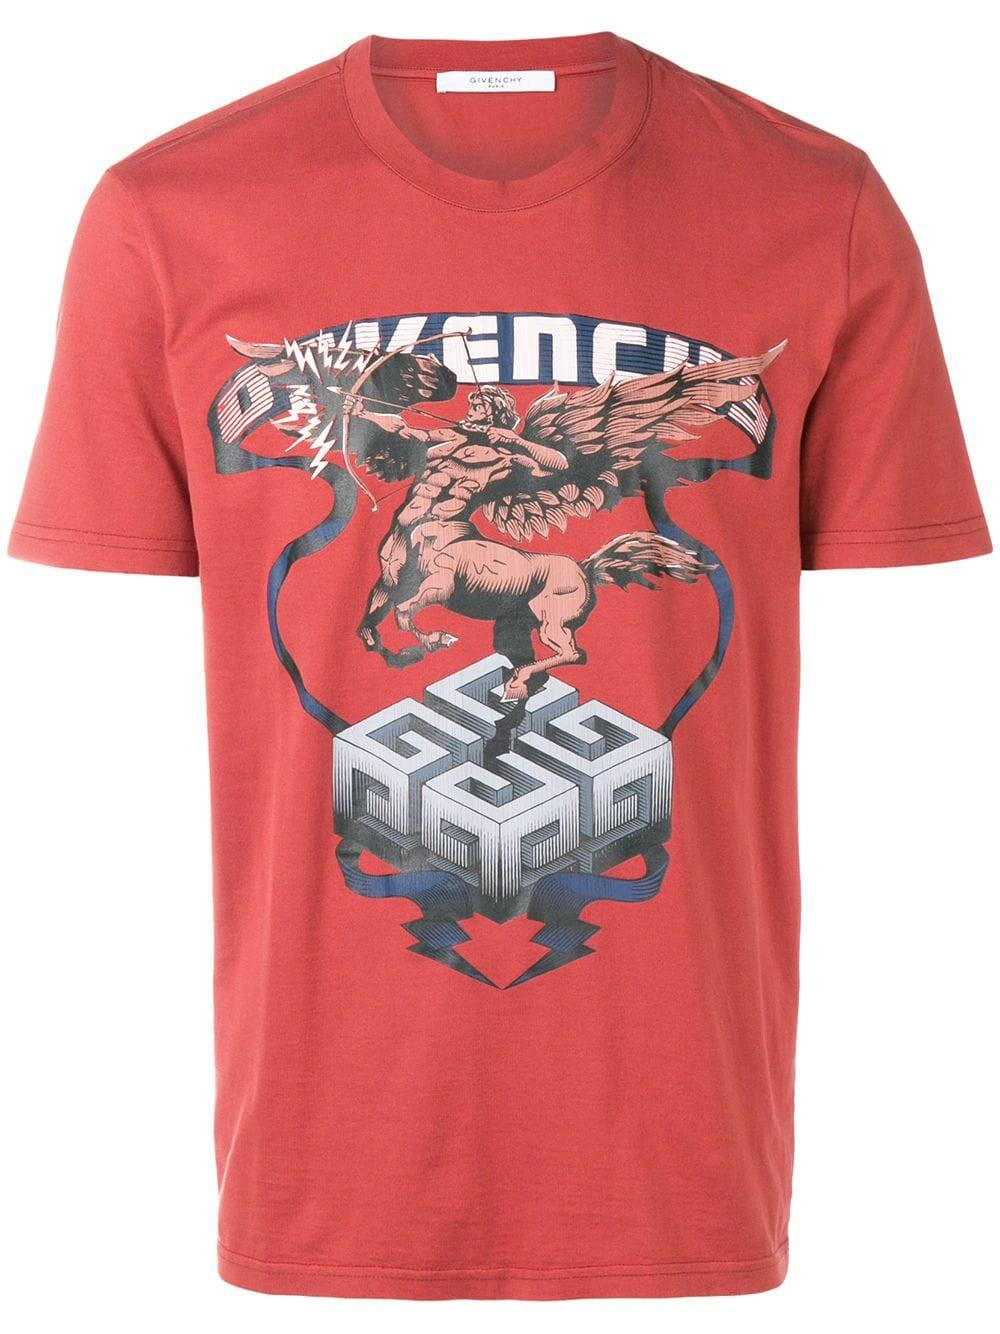 99ba904302cf7 Givenchy Centaur Print T-Shirt In Red. THE WEBSTER